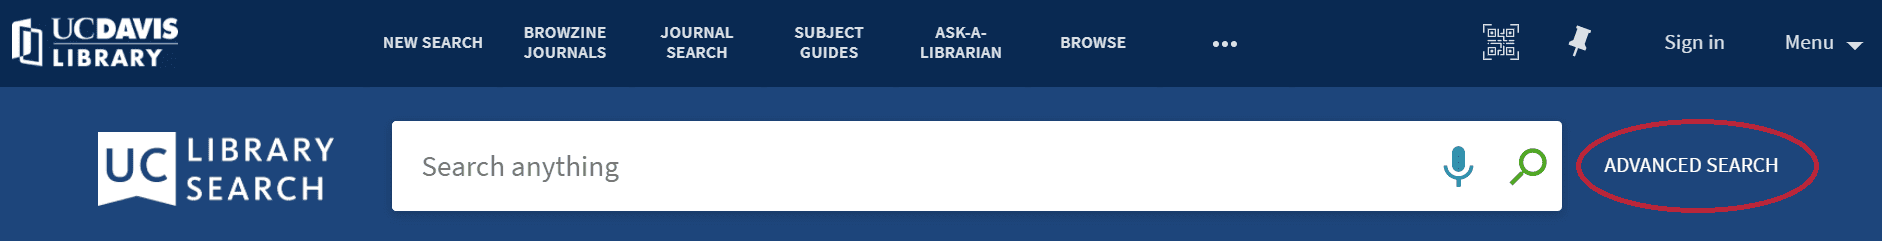 The Advanced Search link is located to the right of the Search box in UC Library Search